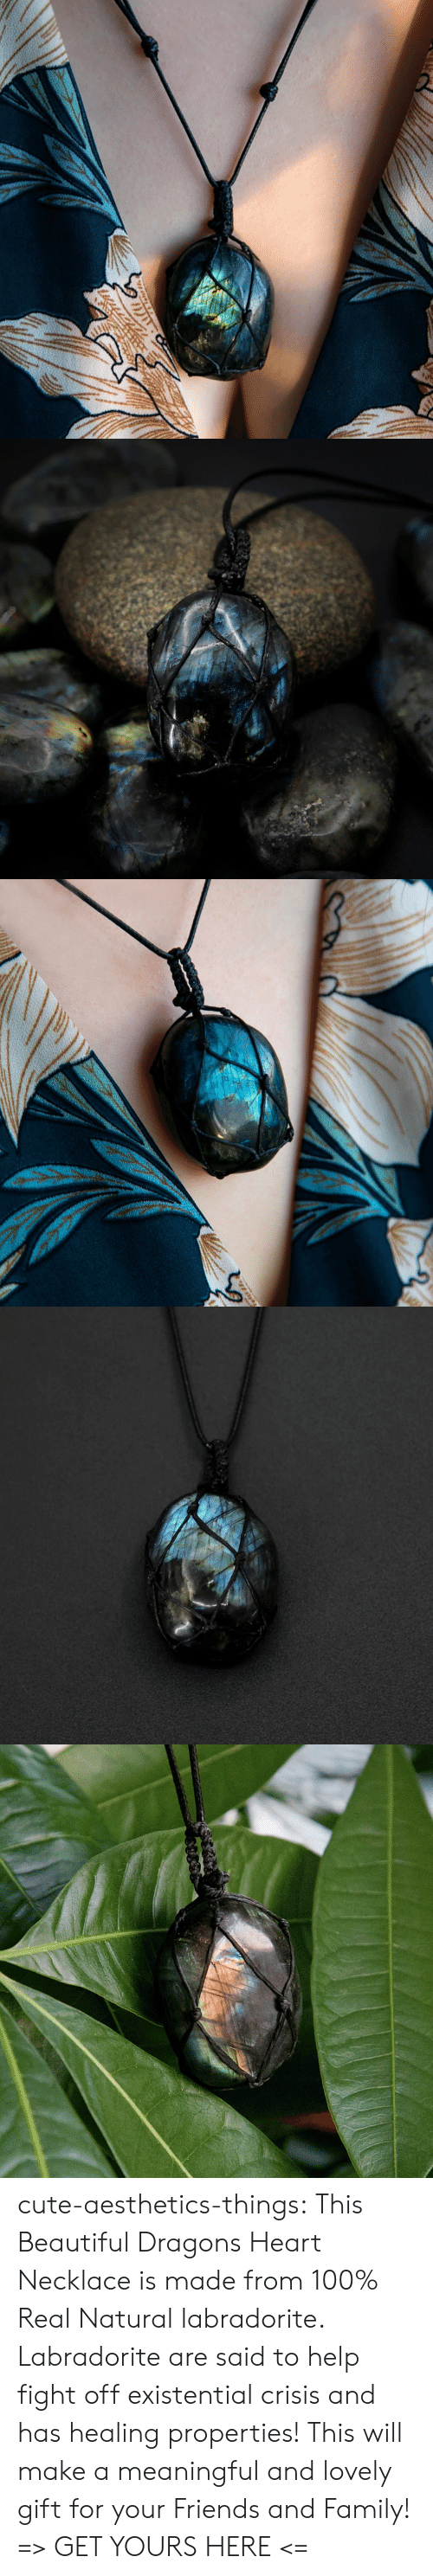 Beautiful, Cute, and Family: cute-aesthetics-things: This Beautiful Dragons Heart Necklace is made from 100% Real Natural labradorite. Labradorite are said to help fight offexistential crisis and has healing properties! This will make a meaningful and lovely gift for your Friends and Family! => GET YOURS HERE <=